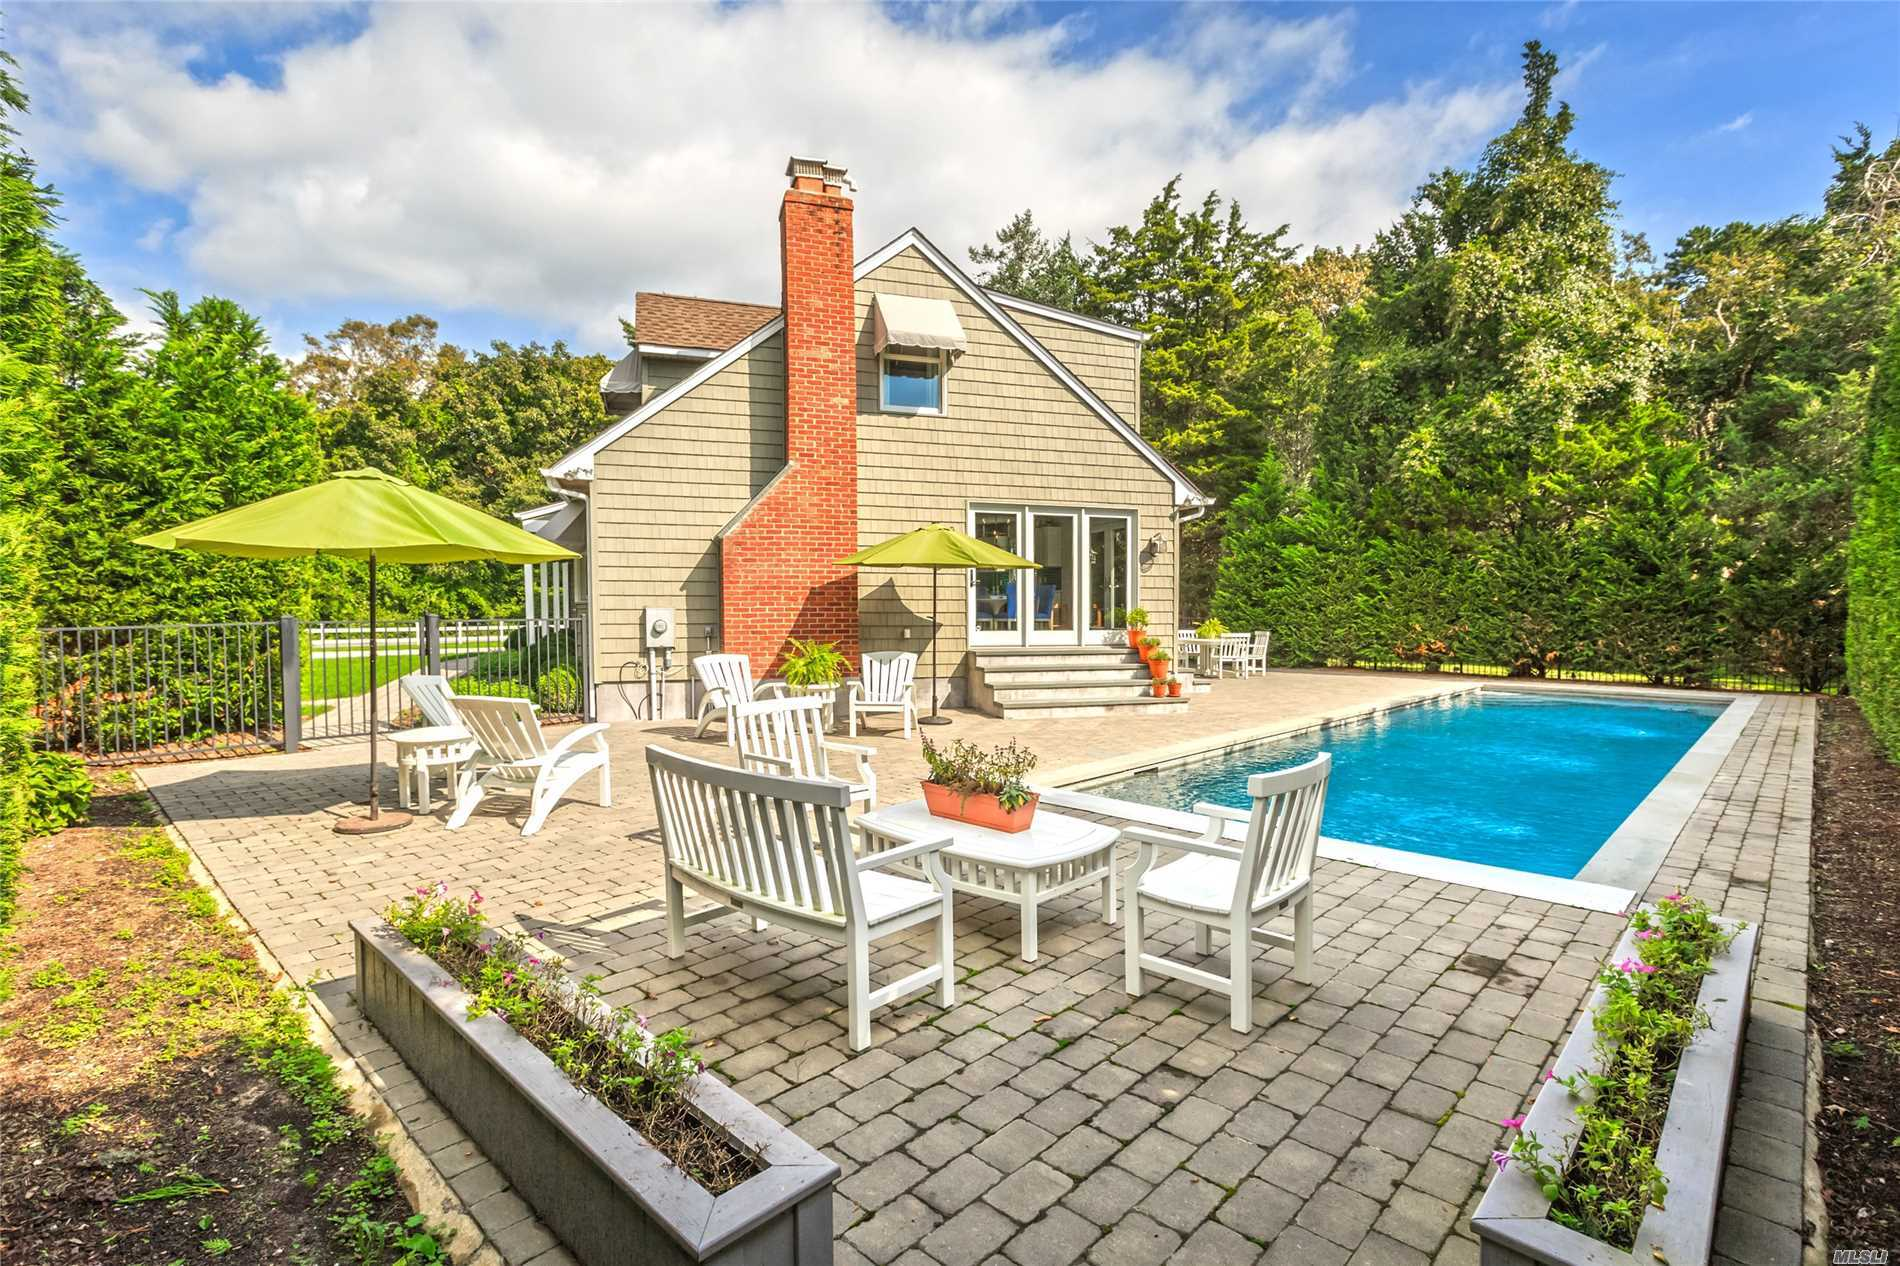 Stunning Presentation Of North Fork Sophistication & Spunk, The Perfect Escape! Total Revamp 2012. Open Concept Living W/Fpl, Dining & Classic White Kitchen W/Color Punch Back Splash, Overlooking Gardens & Heated Gunite 12X47 Pool, Exquisitely Private, Beautifully Designed. Total 4Br, 1st Floor Jr.Master, & 3 Full Baths. For Those Wanting A 5th..We've Got It! Deeded Private Beach, Marina Around Corner & 5 Minute Drive To Mattituck Famous Love Lane. Whole House Generator. Alarm System. Enchanting!